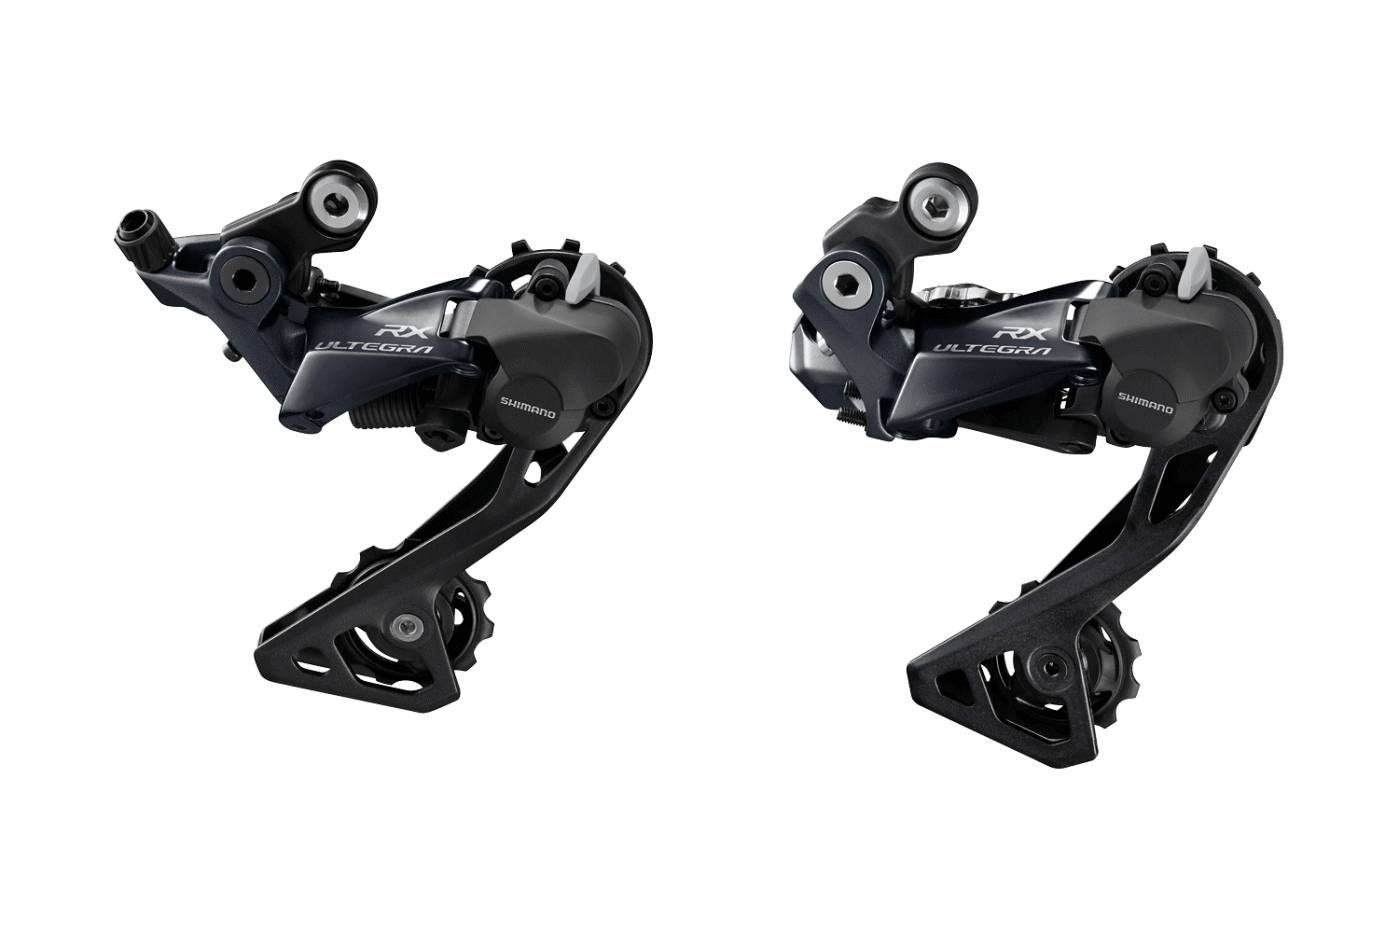 Mountain Bike Tech Comes to Road Bikes in the Shimano Ultegra RX Rear Derailleur 3